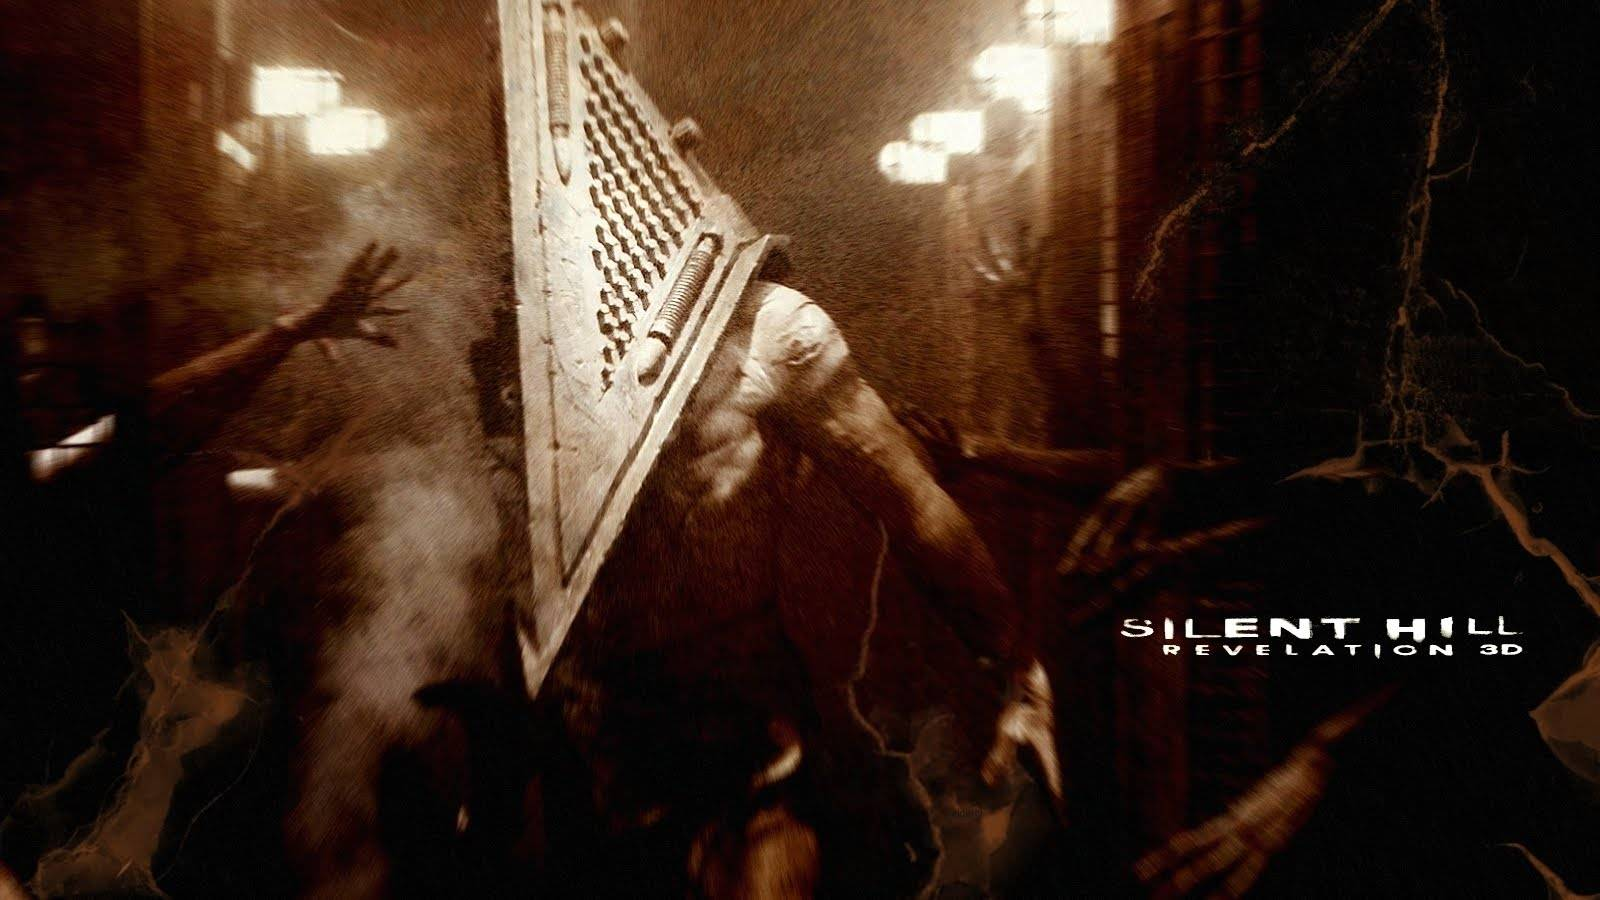 Silent Hill Pyramid Head Wallpapers - Wallpaper CaveSilent Hill Revelation Pyramid Head Fight Scene